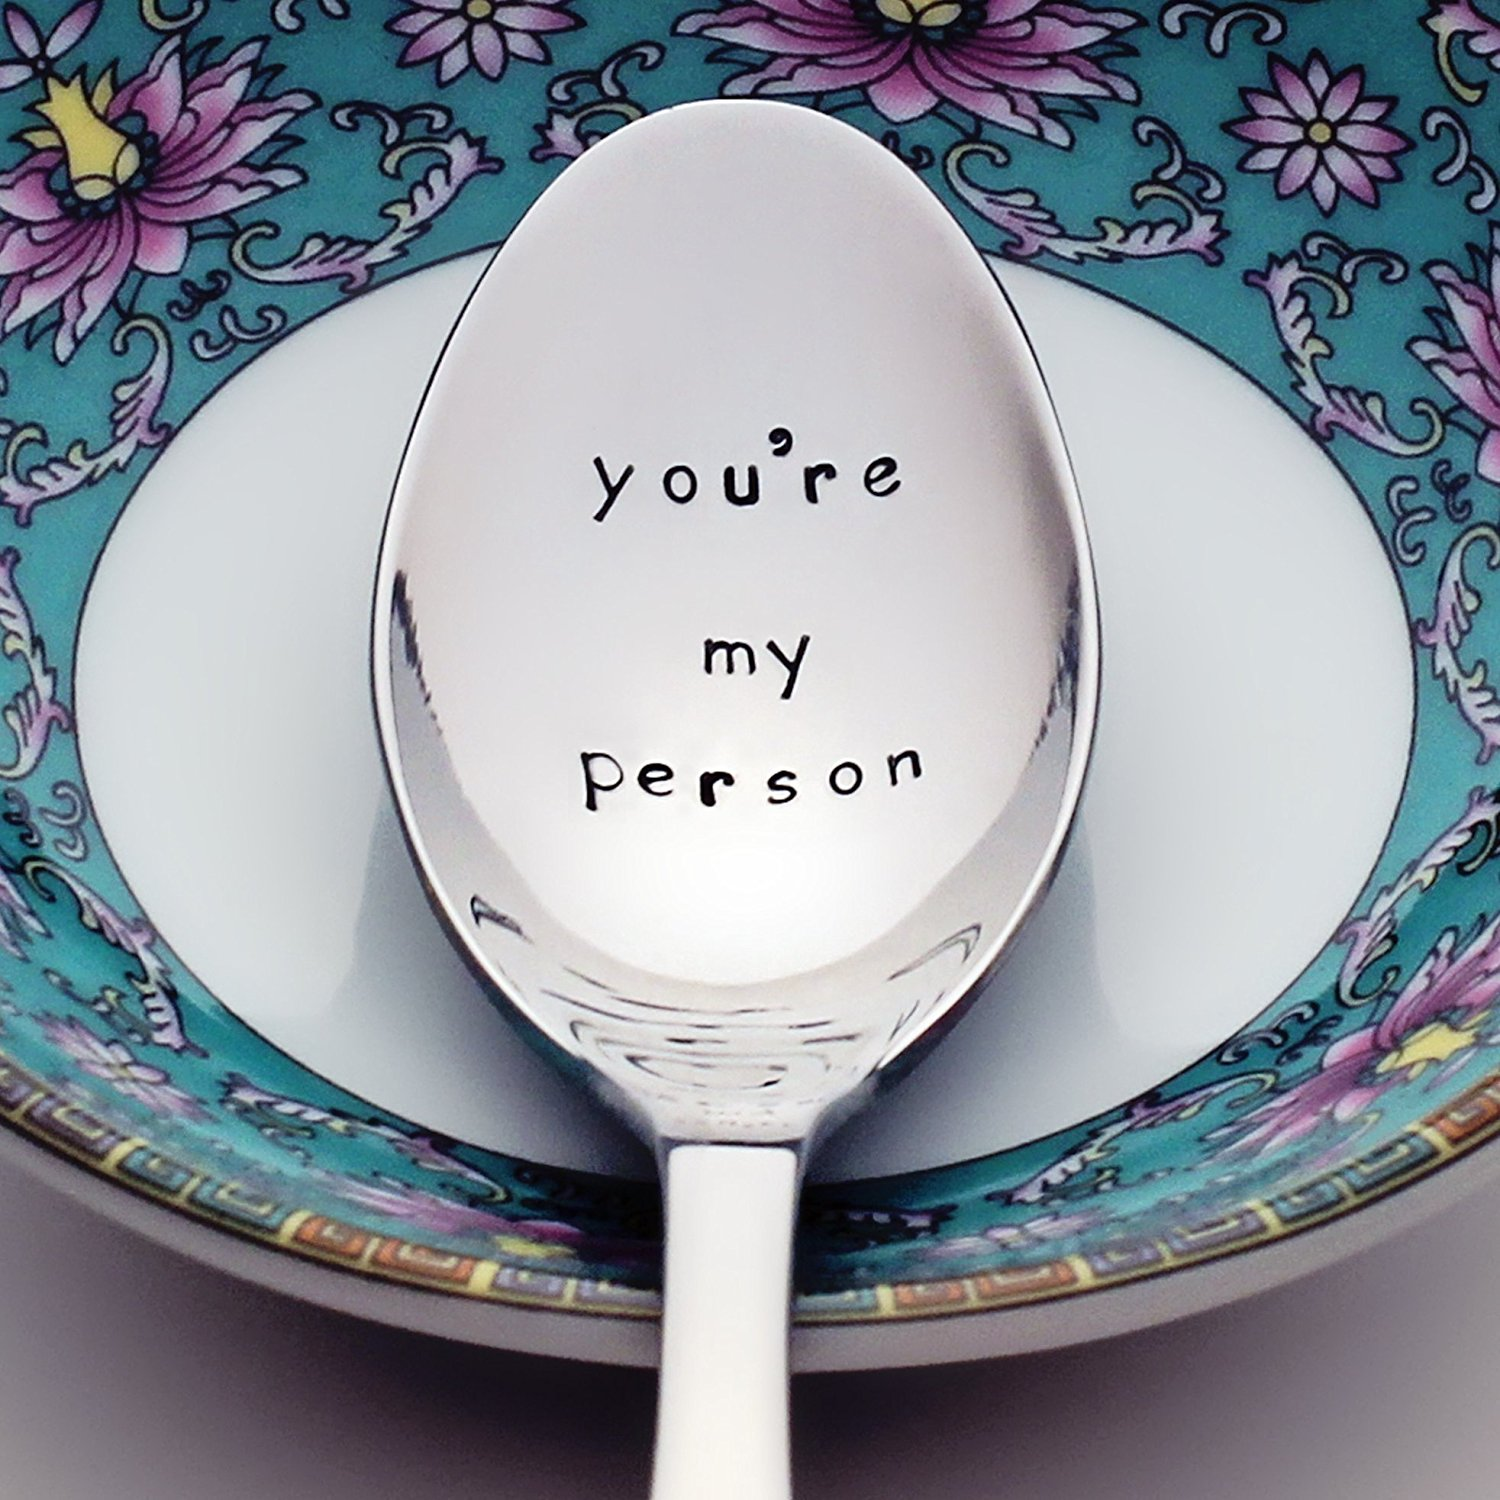 You're My Person – Grey's Anatomy Inspired Stamped Spoon